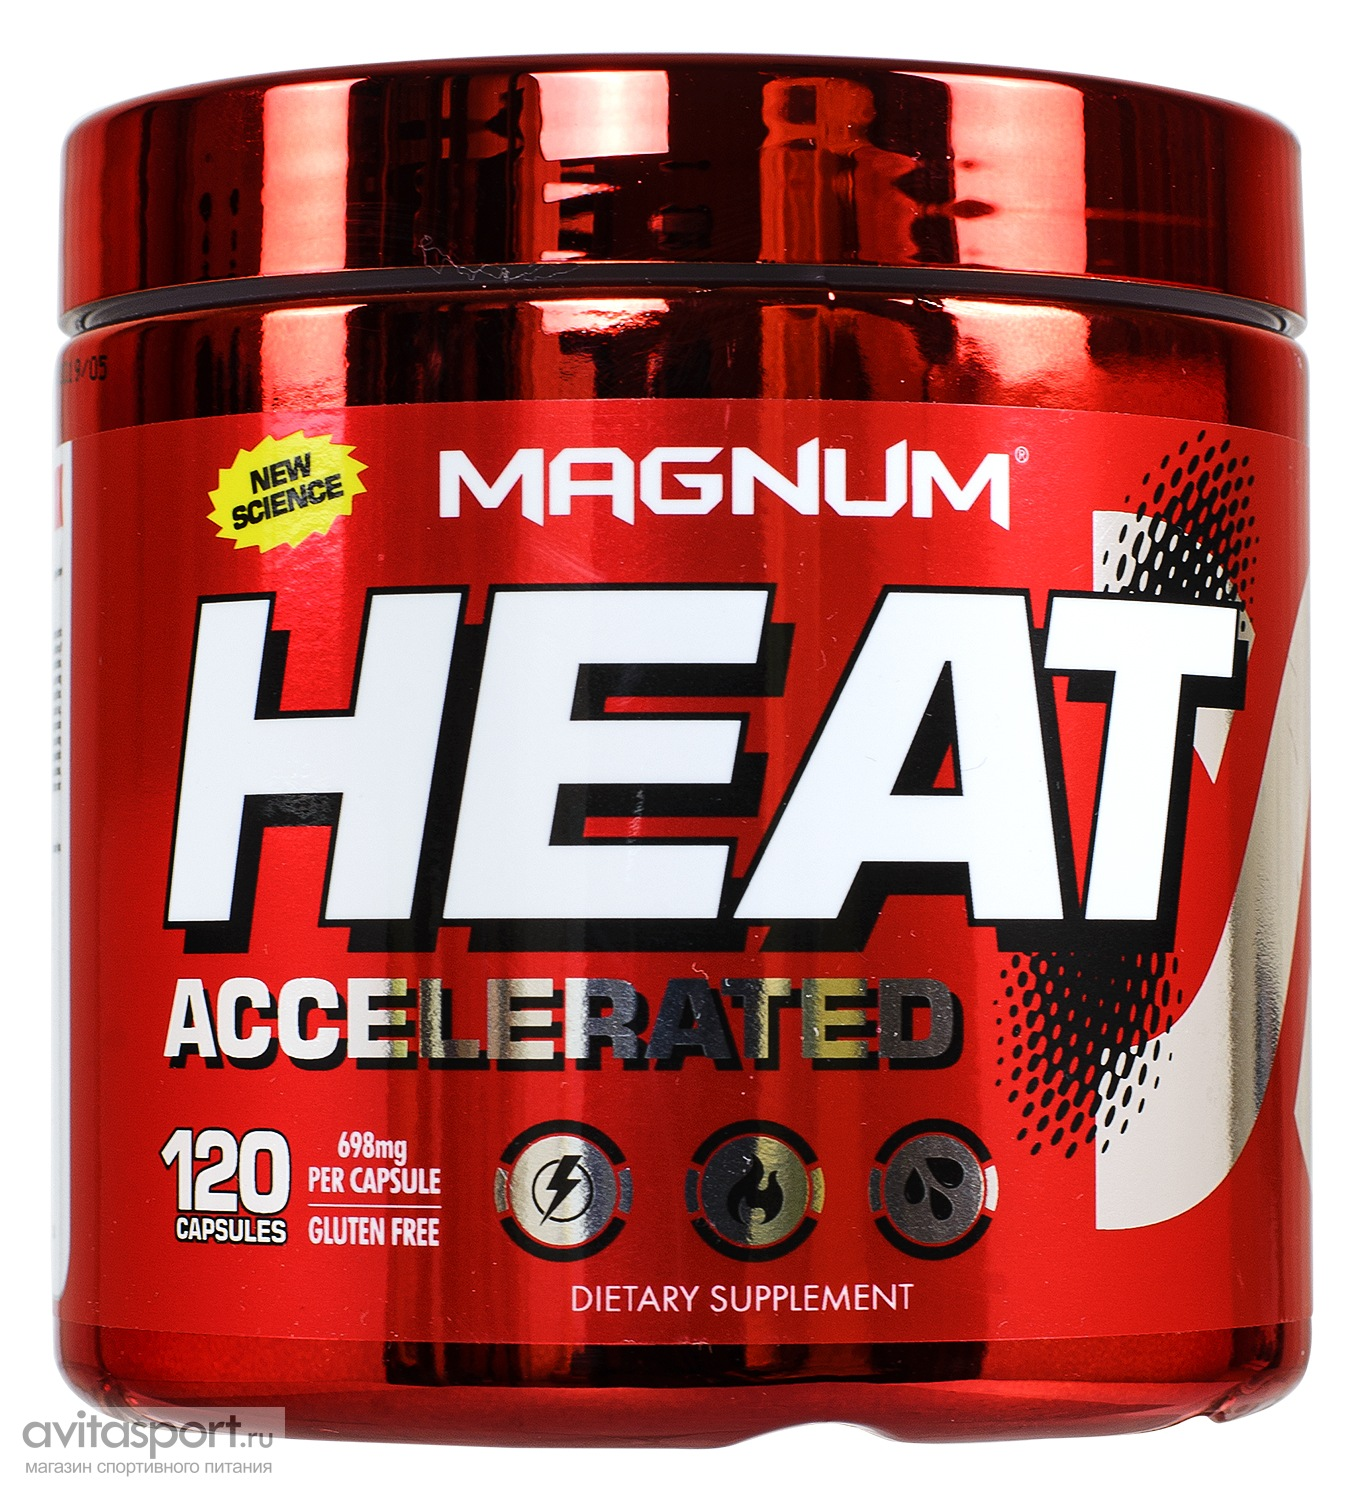 Magnum Heat Accelerated 120 капсул